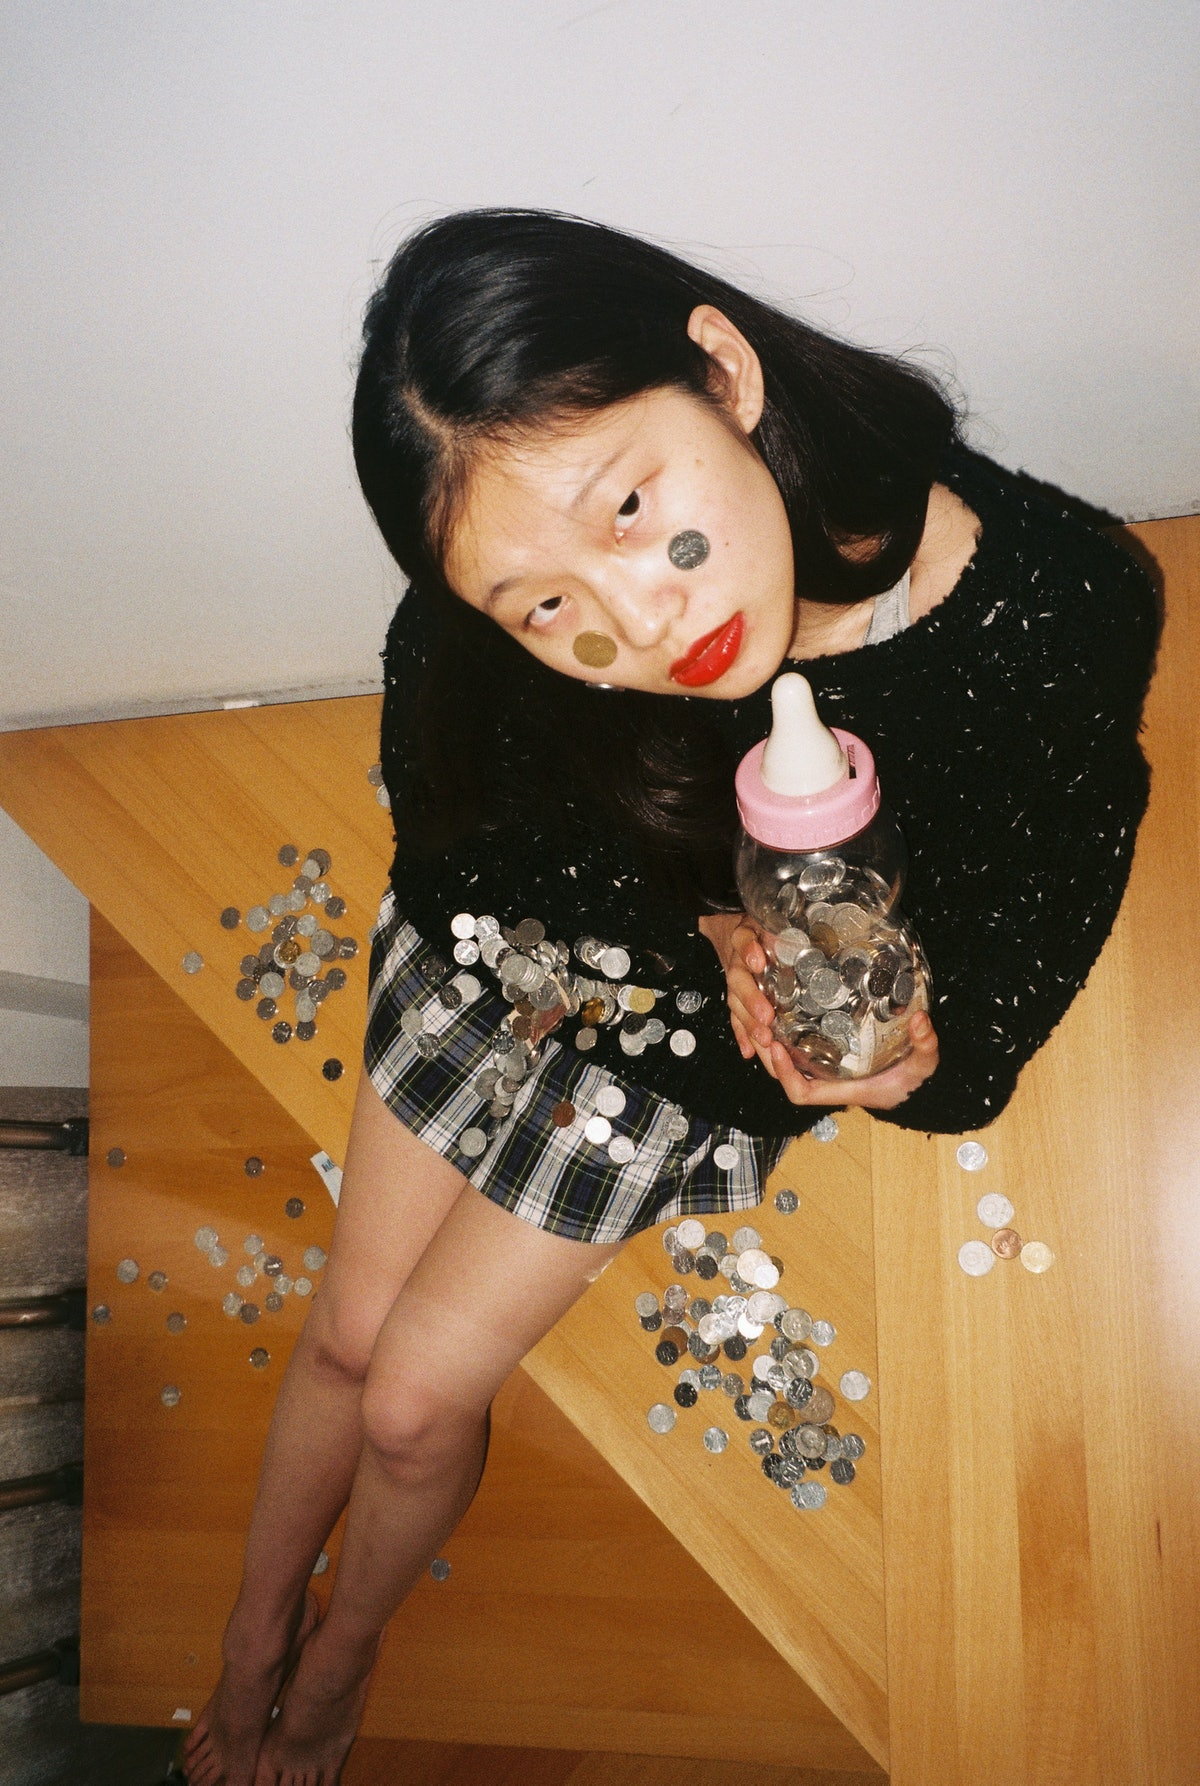 Young woman playing with coins and a baby bottle to show how old she is mentally, according to her z...